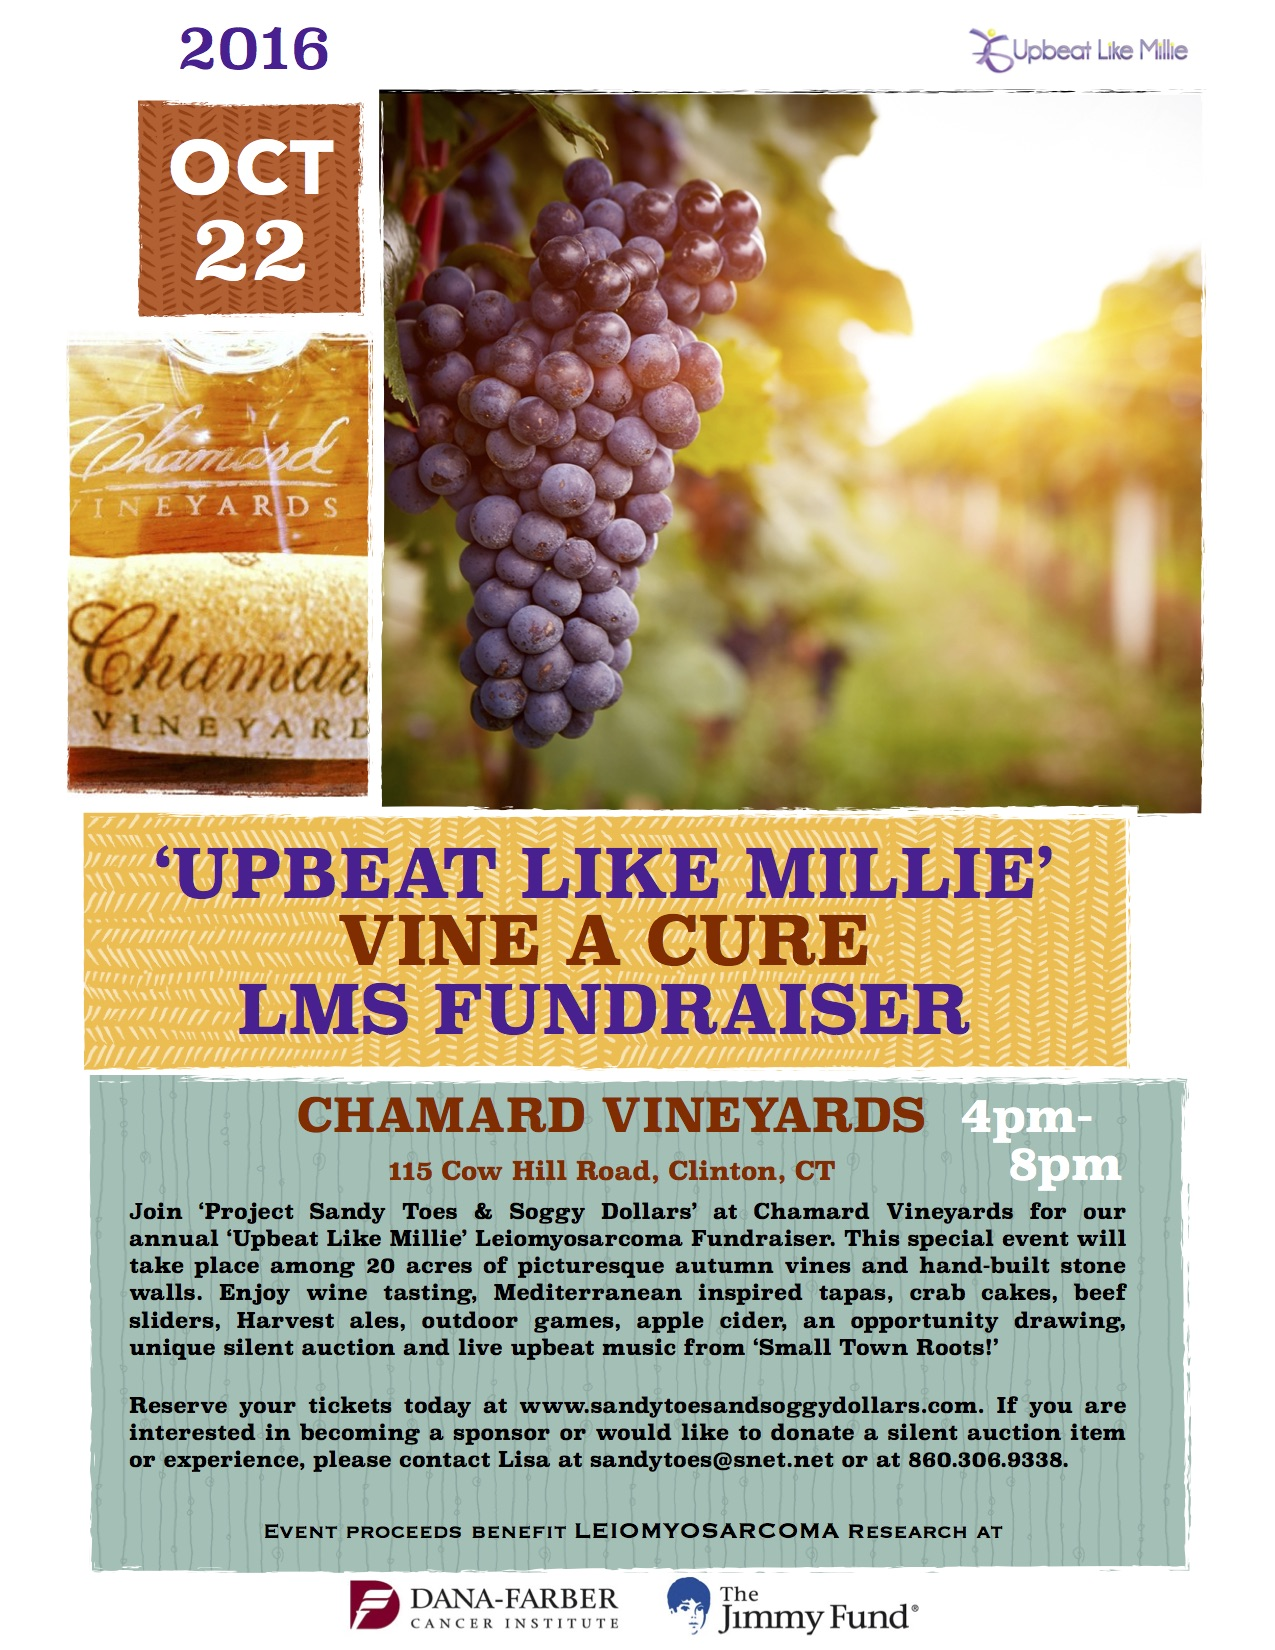 upbeat-like-millie-vine-a-cure-info-flyer